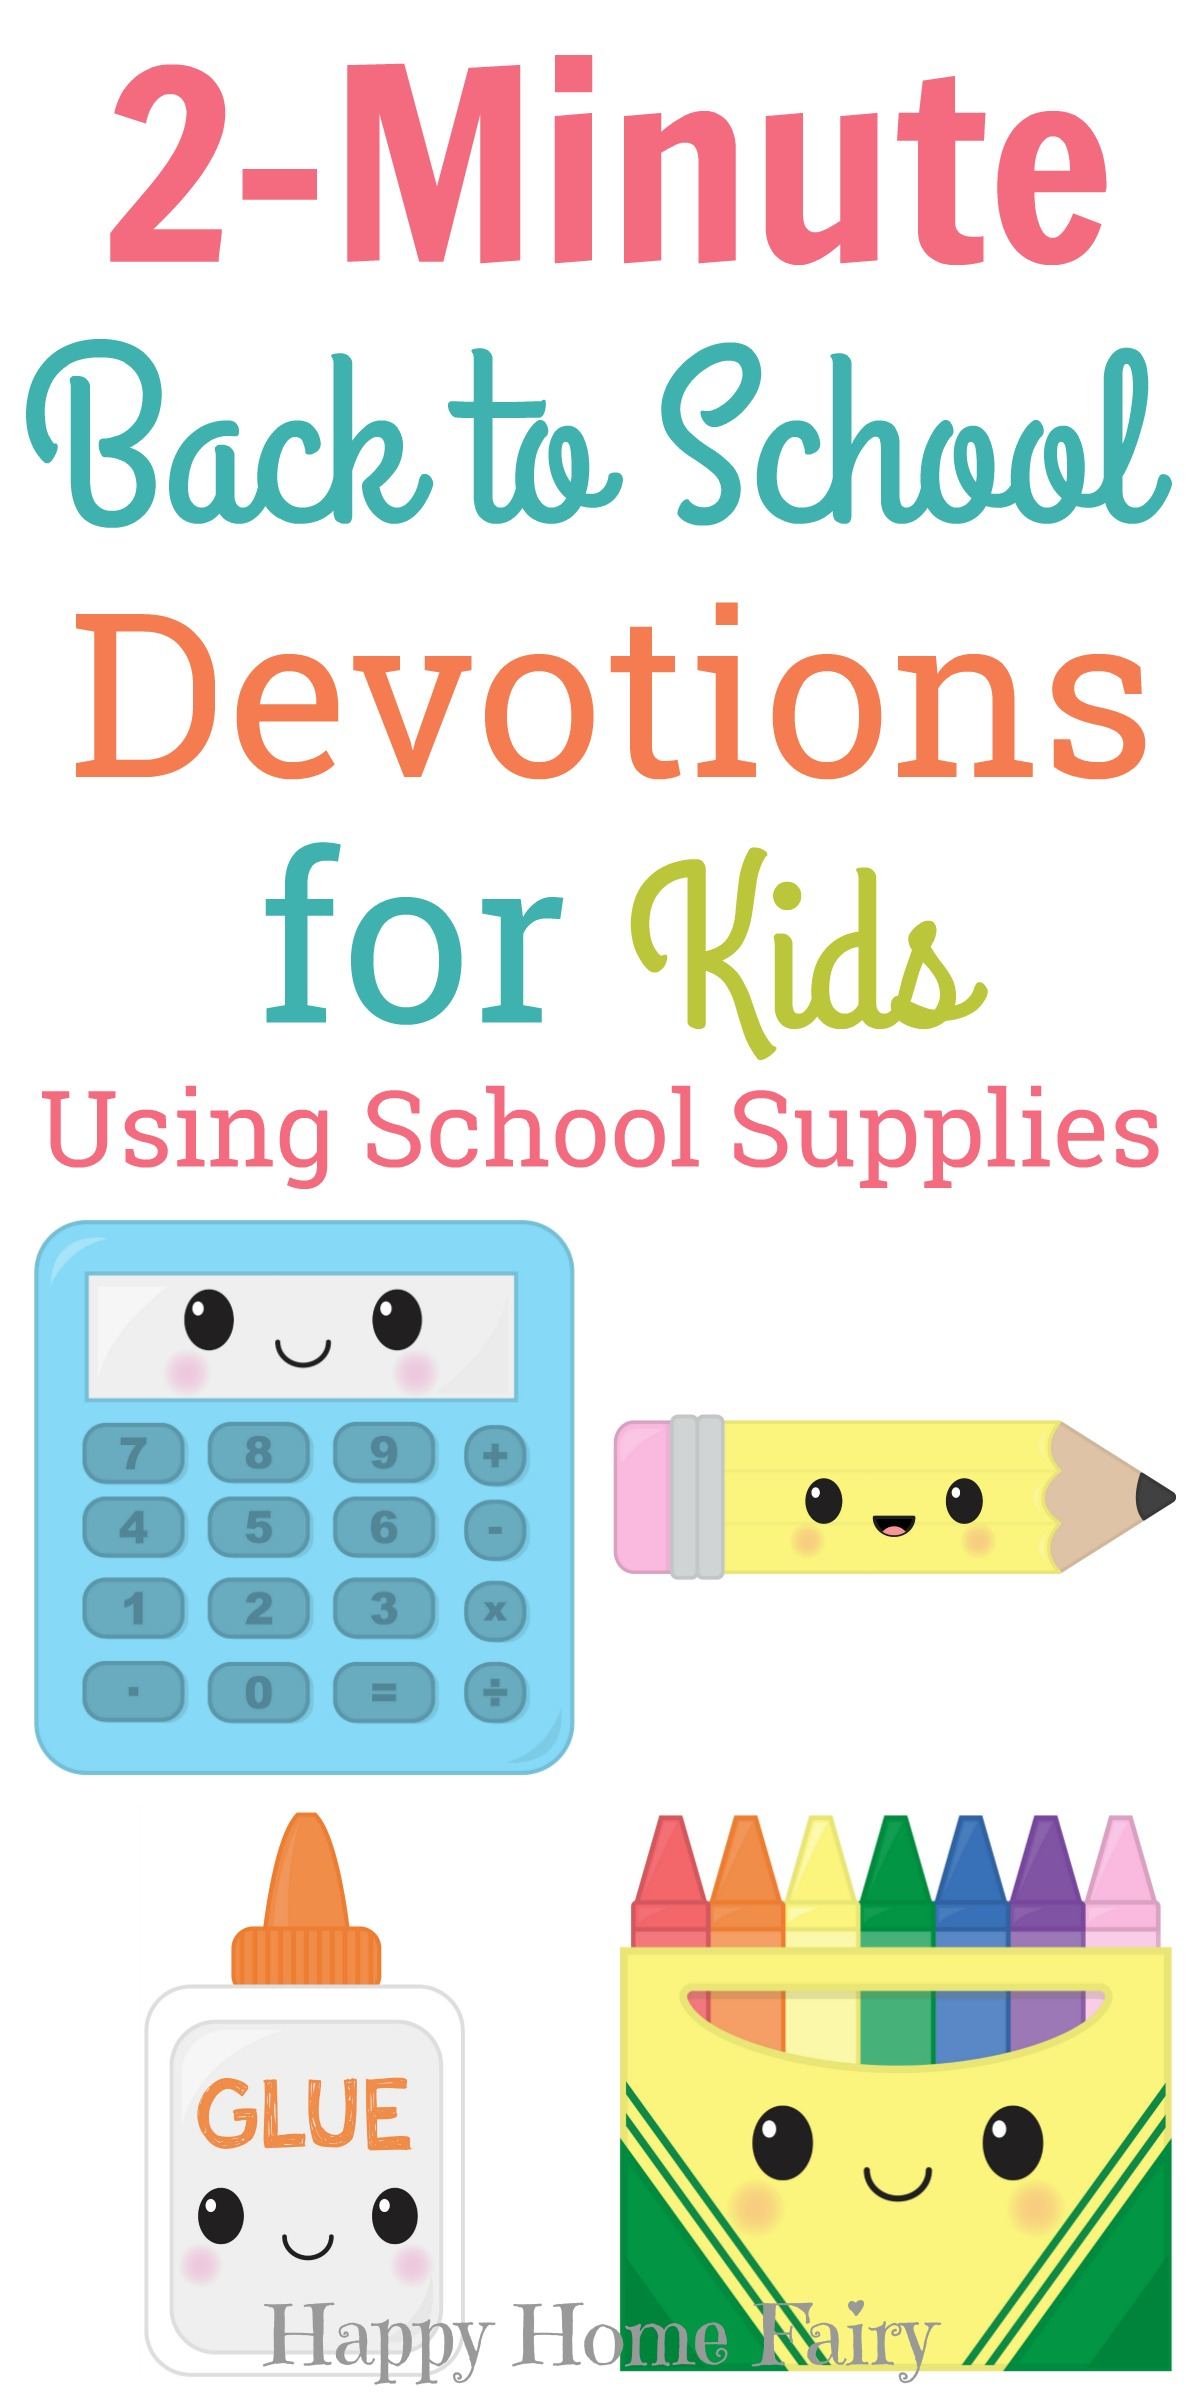 2-Minute Back to School Devotions for Kids - Happy Home Fairy